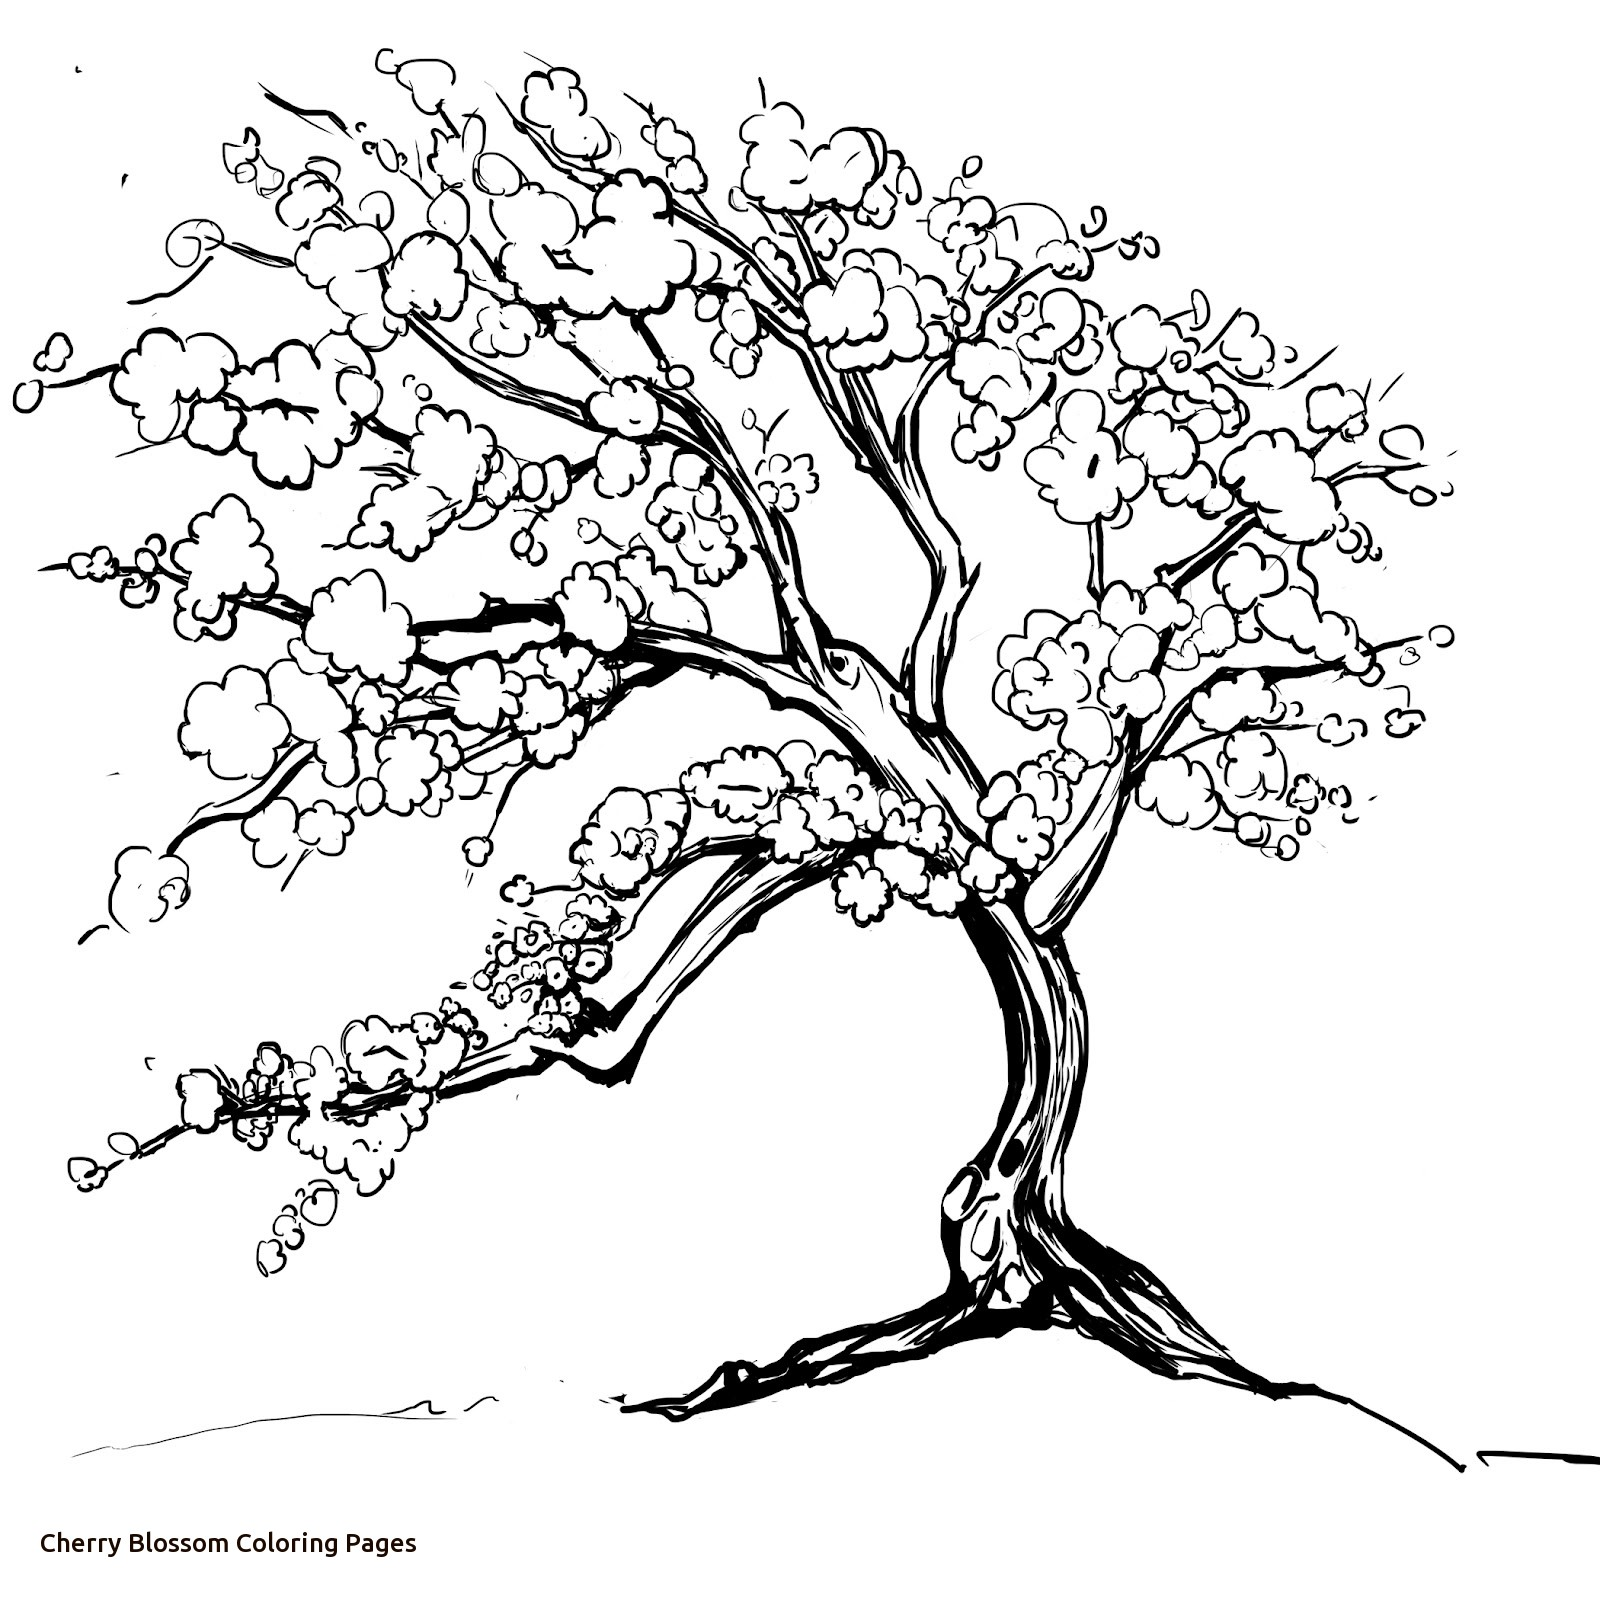 1600x1600 Cherry Blossom Coloring Pages Charming